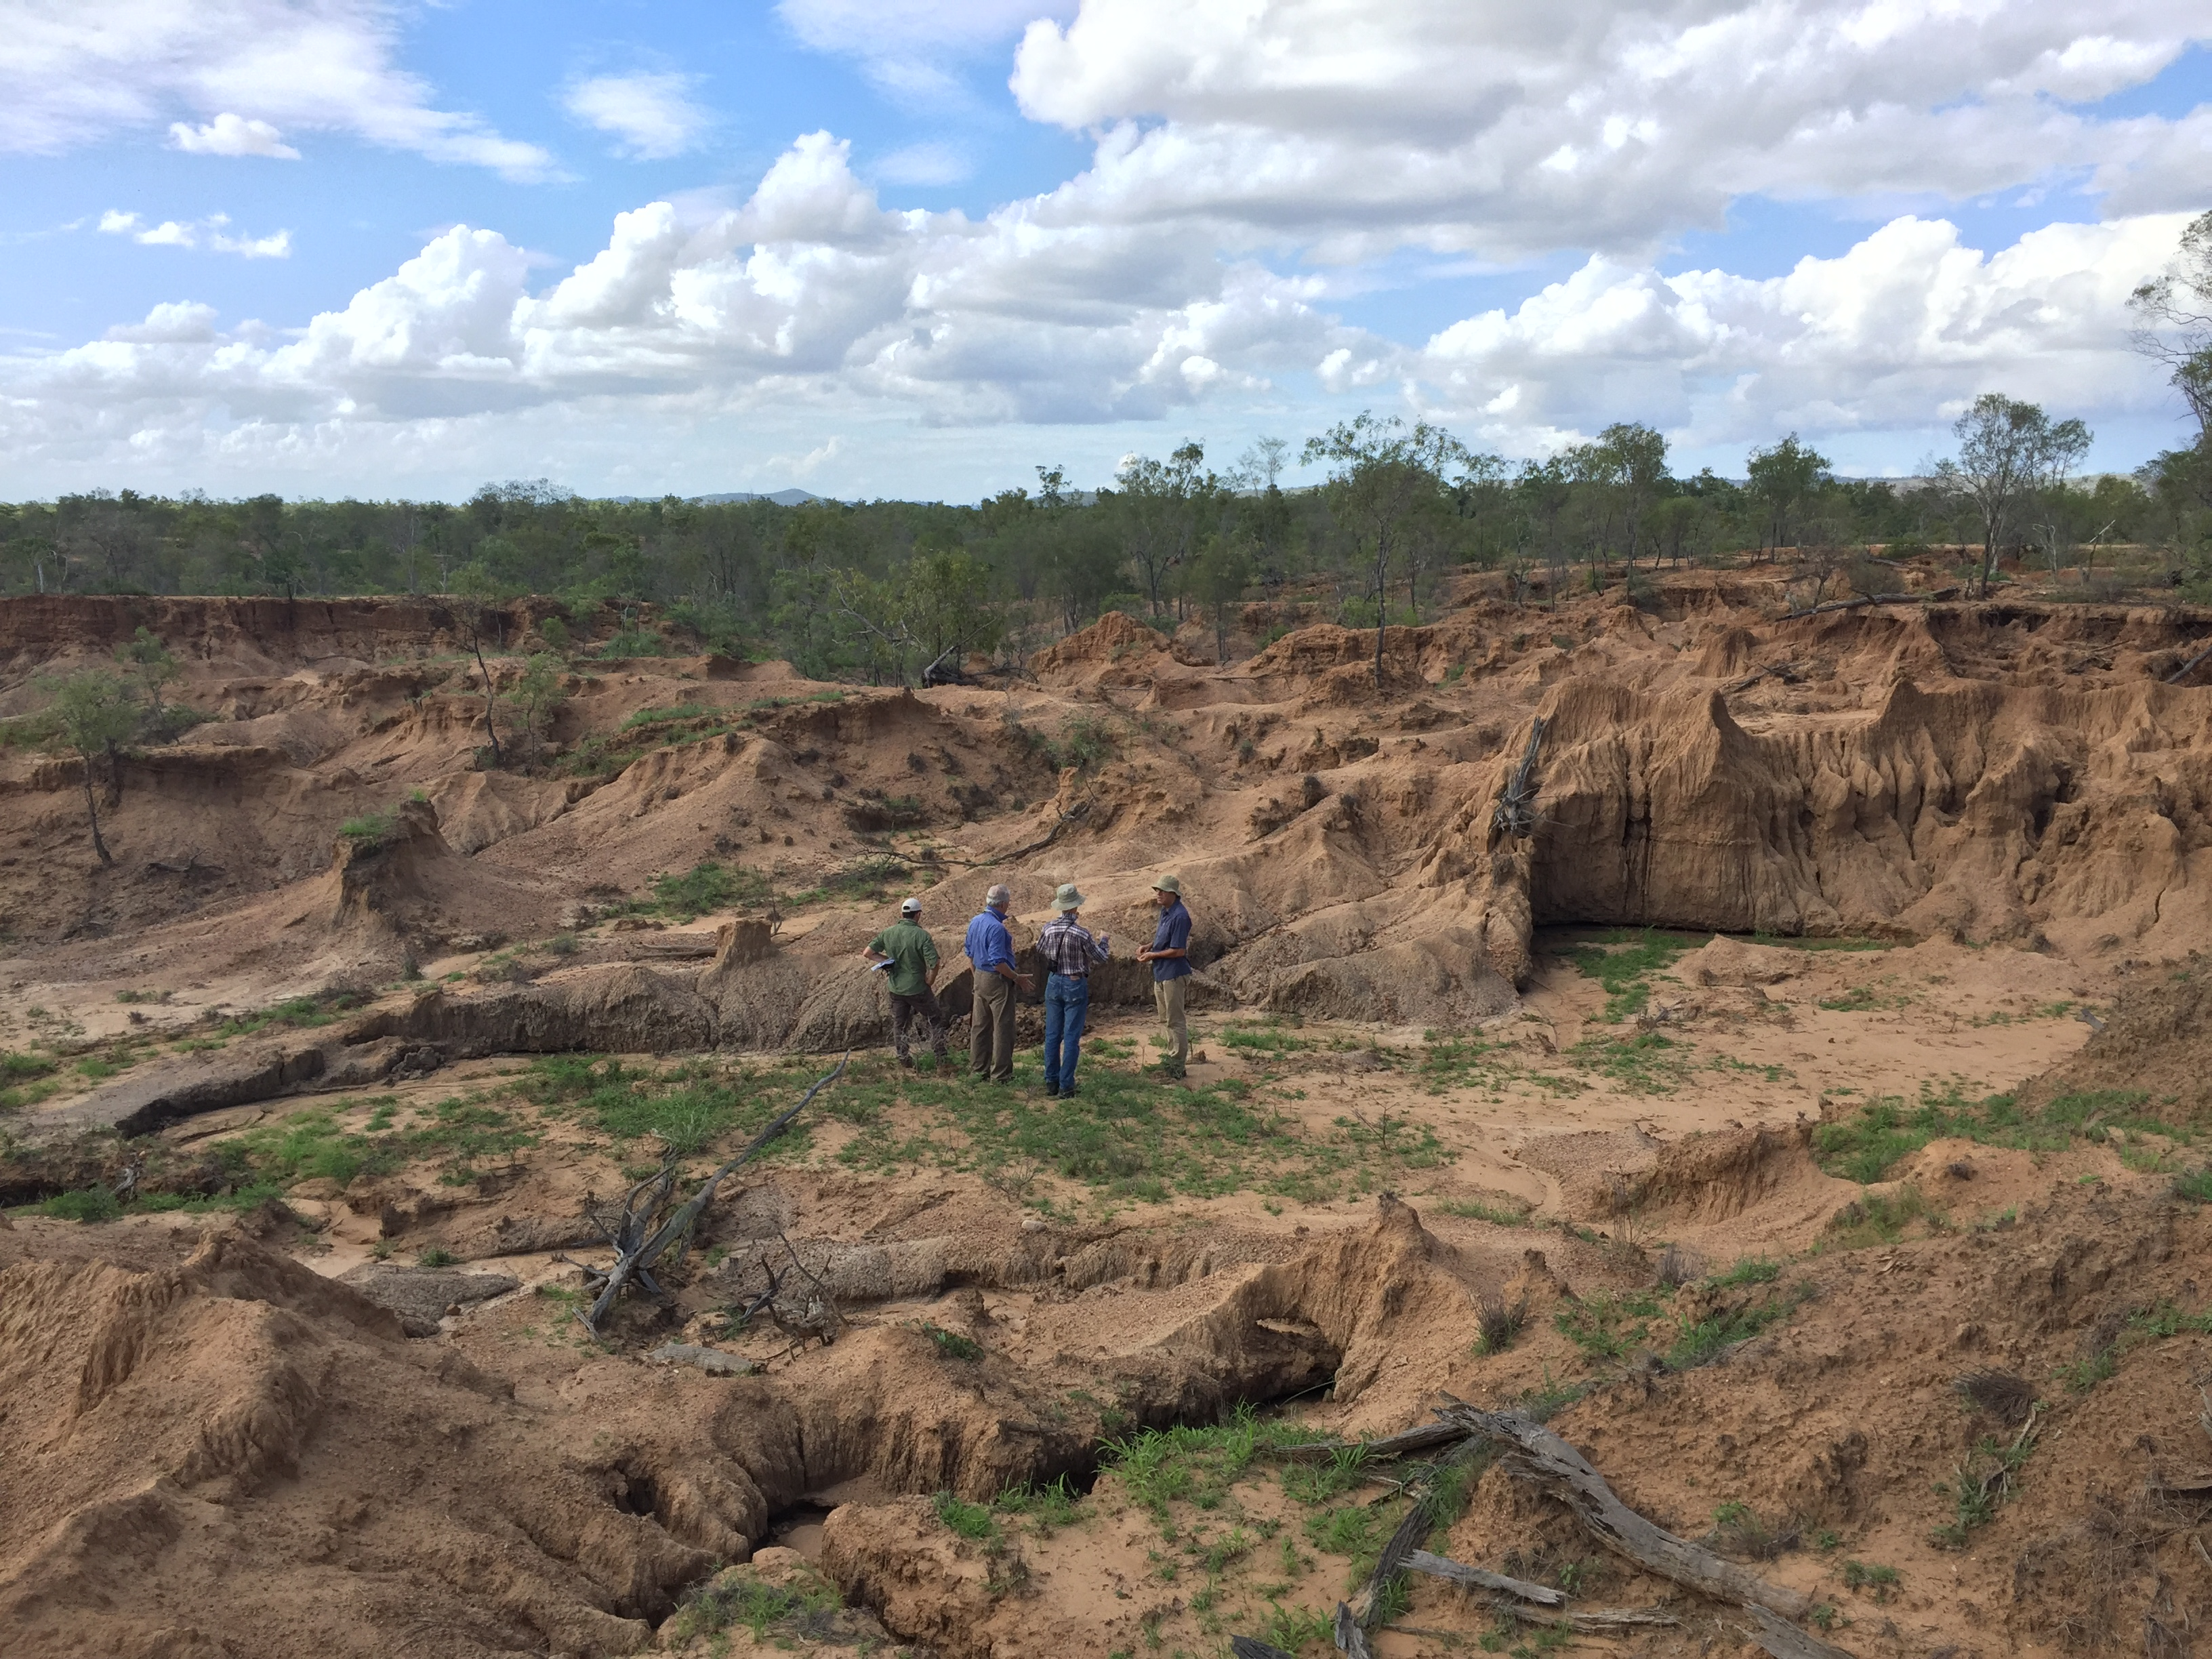 Four CSIRO researchers standing in an eroded gully.